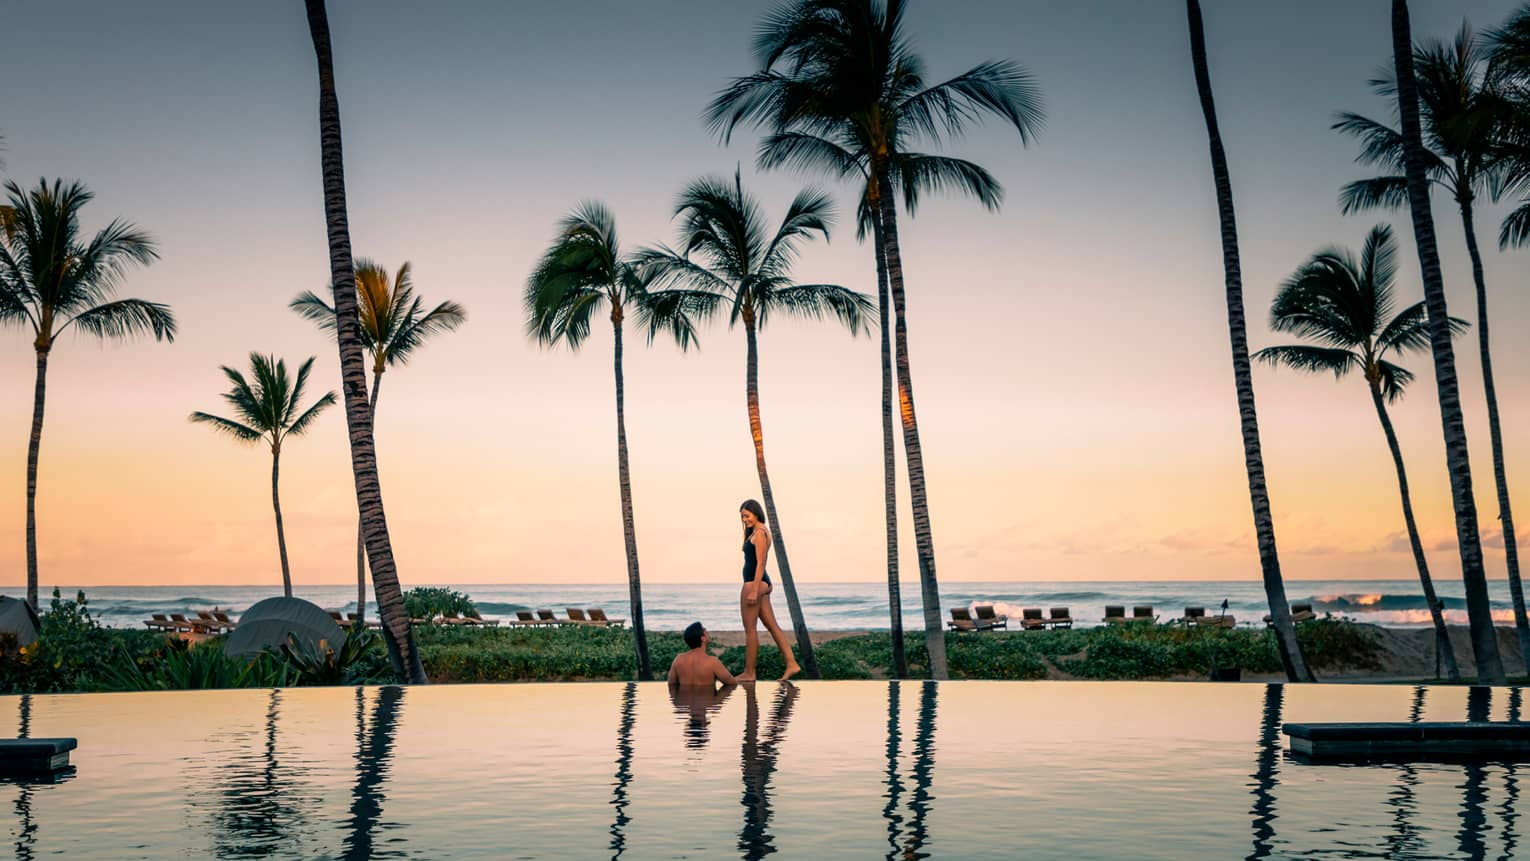 Woman in swimsuit walks on edge of pool past wading man, tall palm trees at sunset